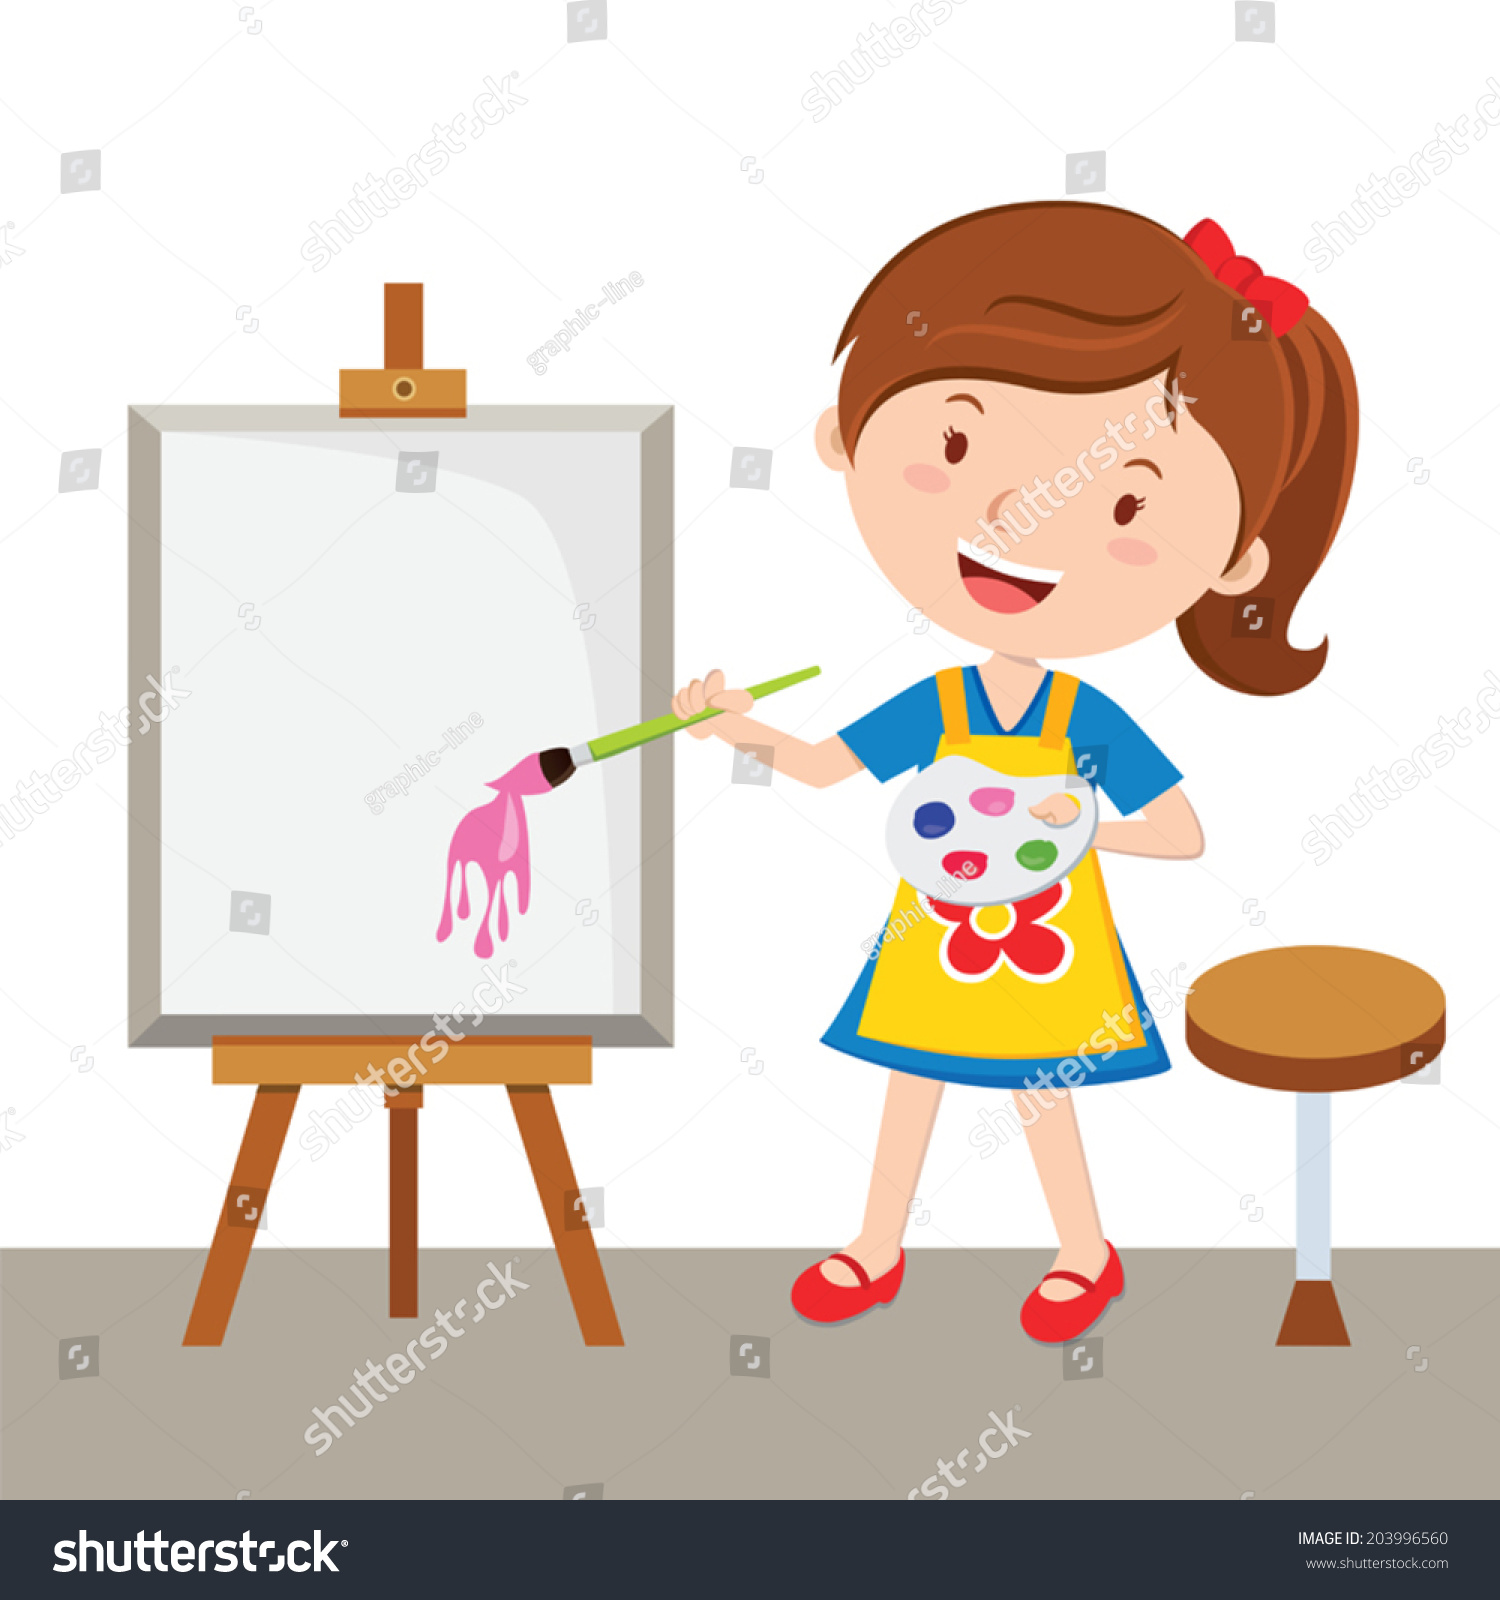 Artist Girl Clip Art,Search Cliparts images